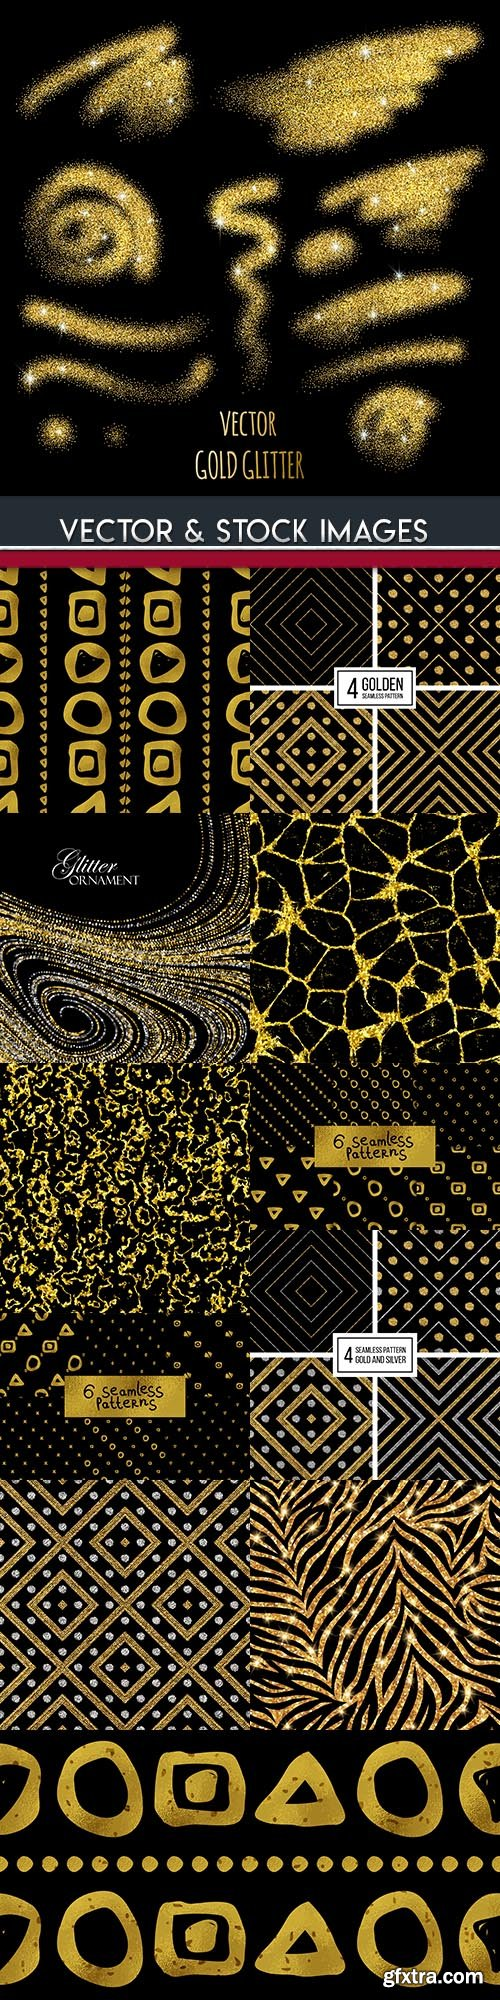 Gold glitter abstract design seamless pattern